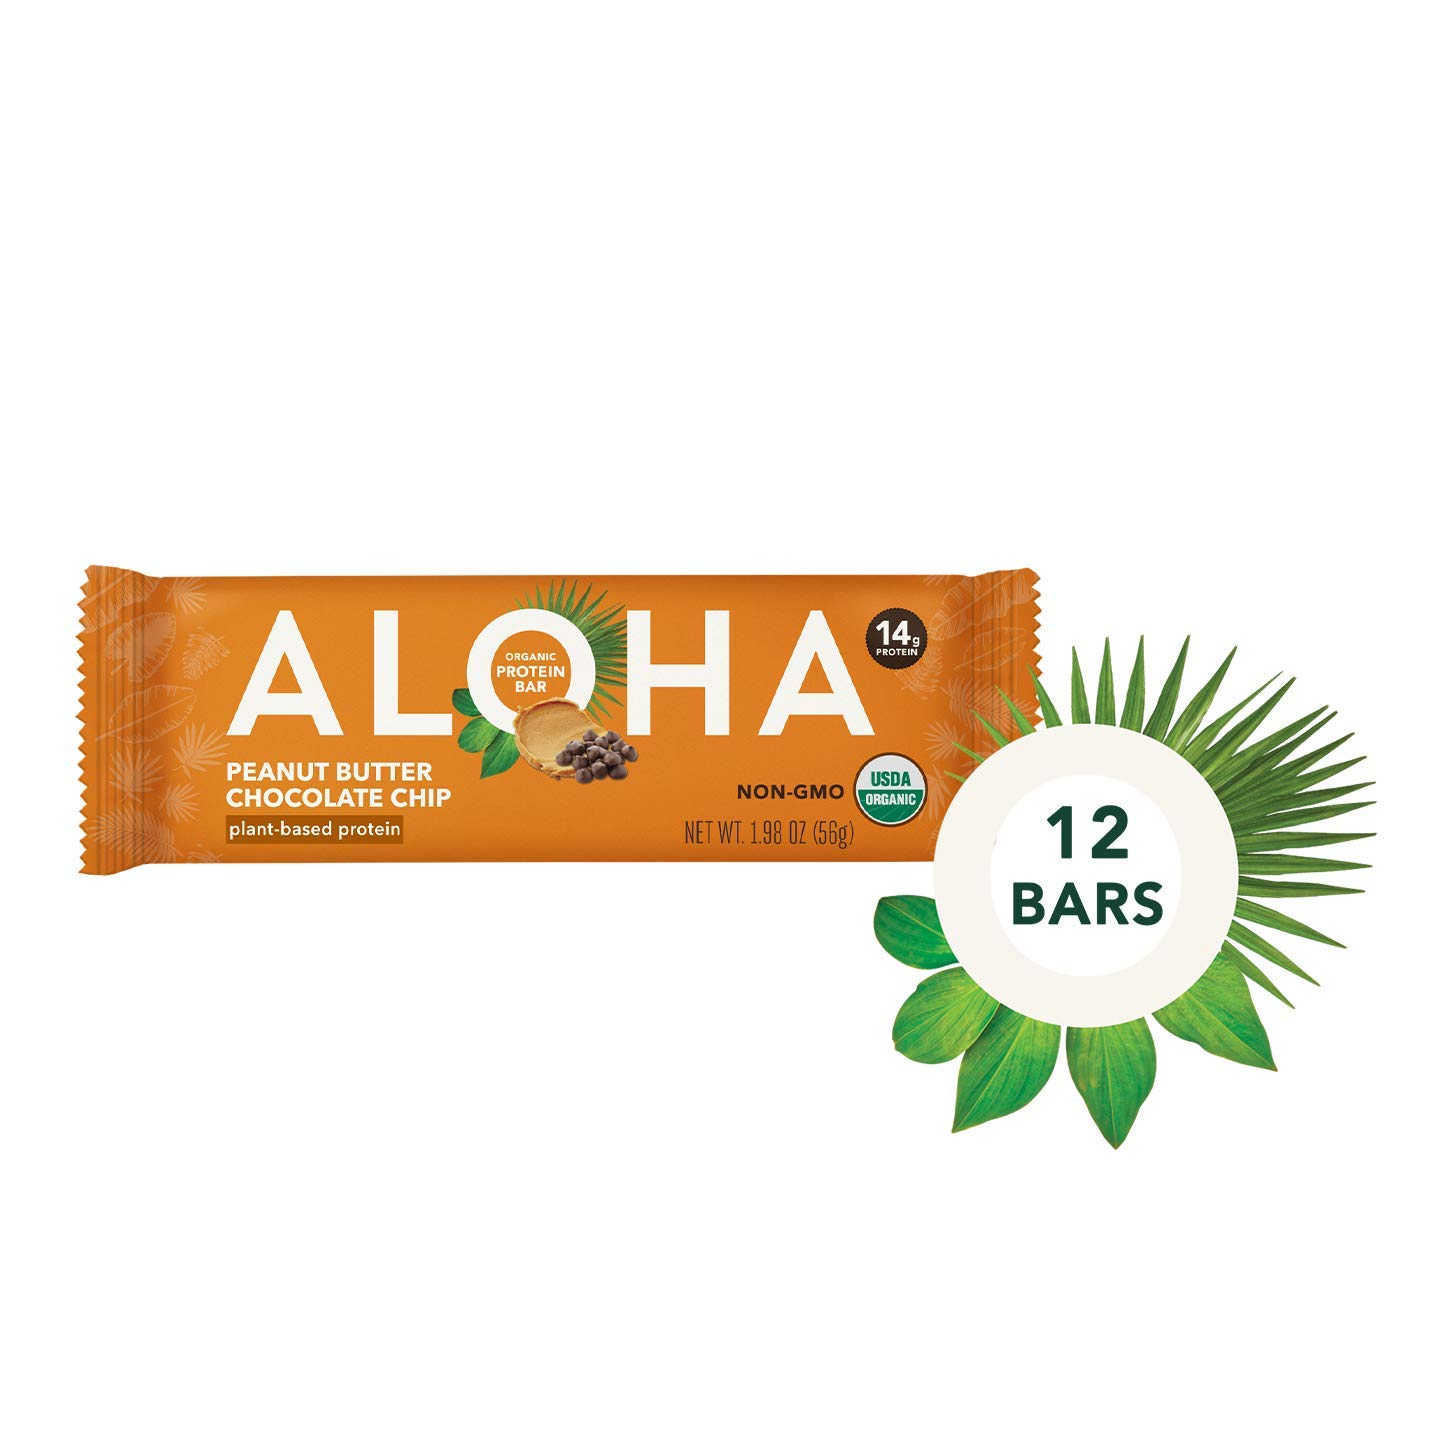 ALOHA Organic Plant Based Protein Bars |Peanut Butter Chocolate Chip | 12 Count, 1.9oz Bars | Vegan, Low Sugar, Gluten Free, Paleo, Low Carb, Non-GMO, Stevia Free, Soy Free by ALOHA